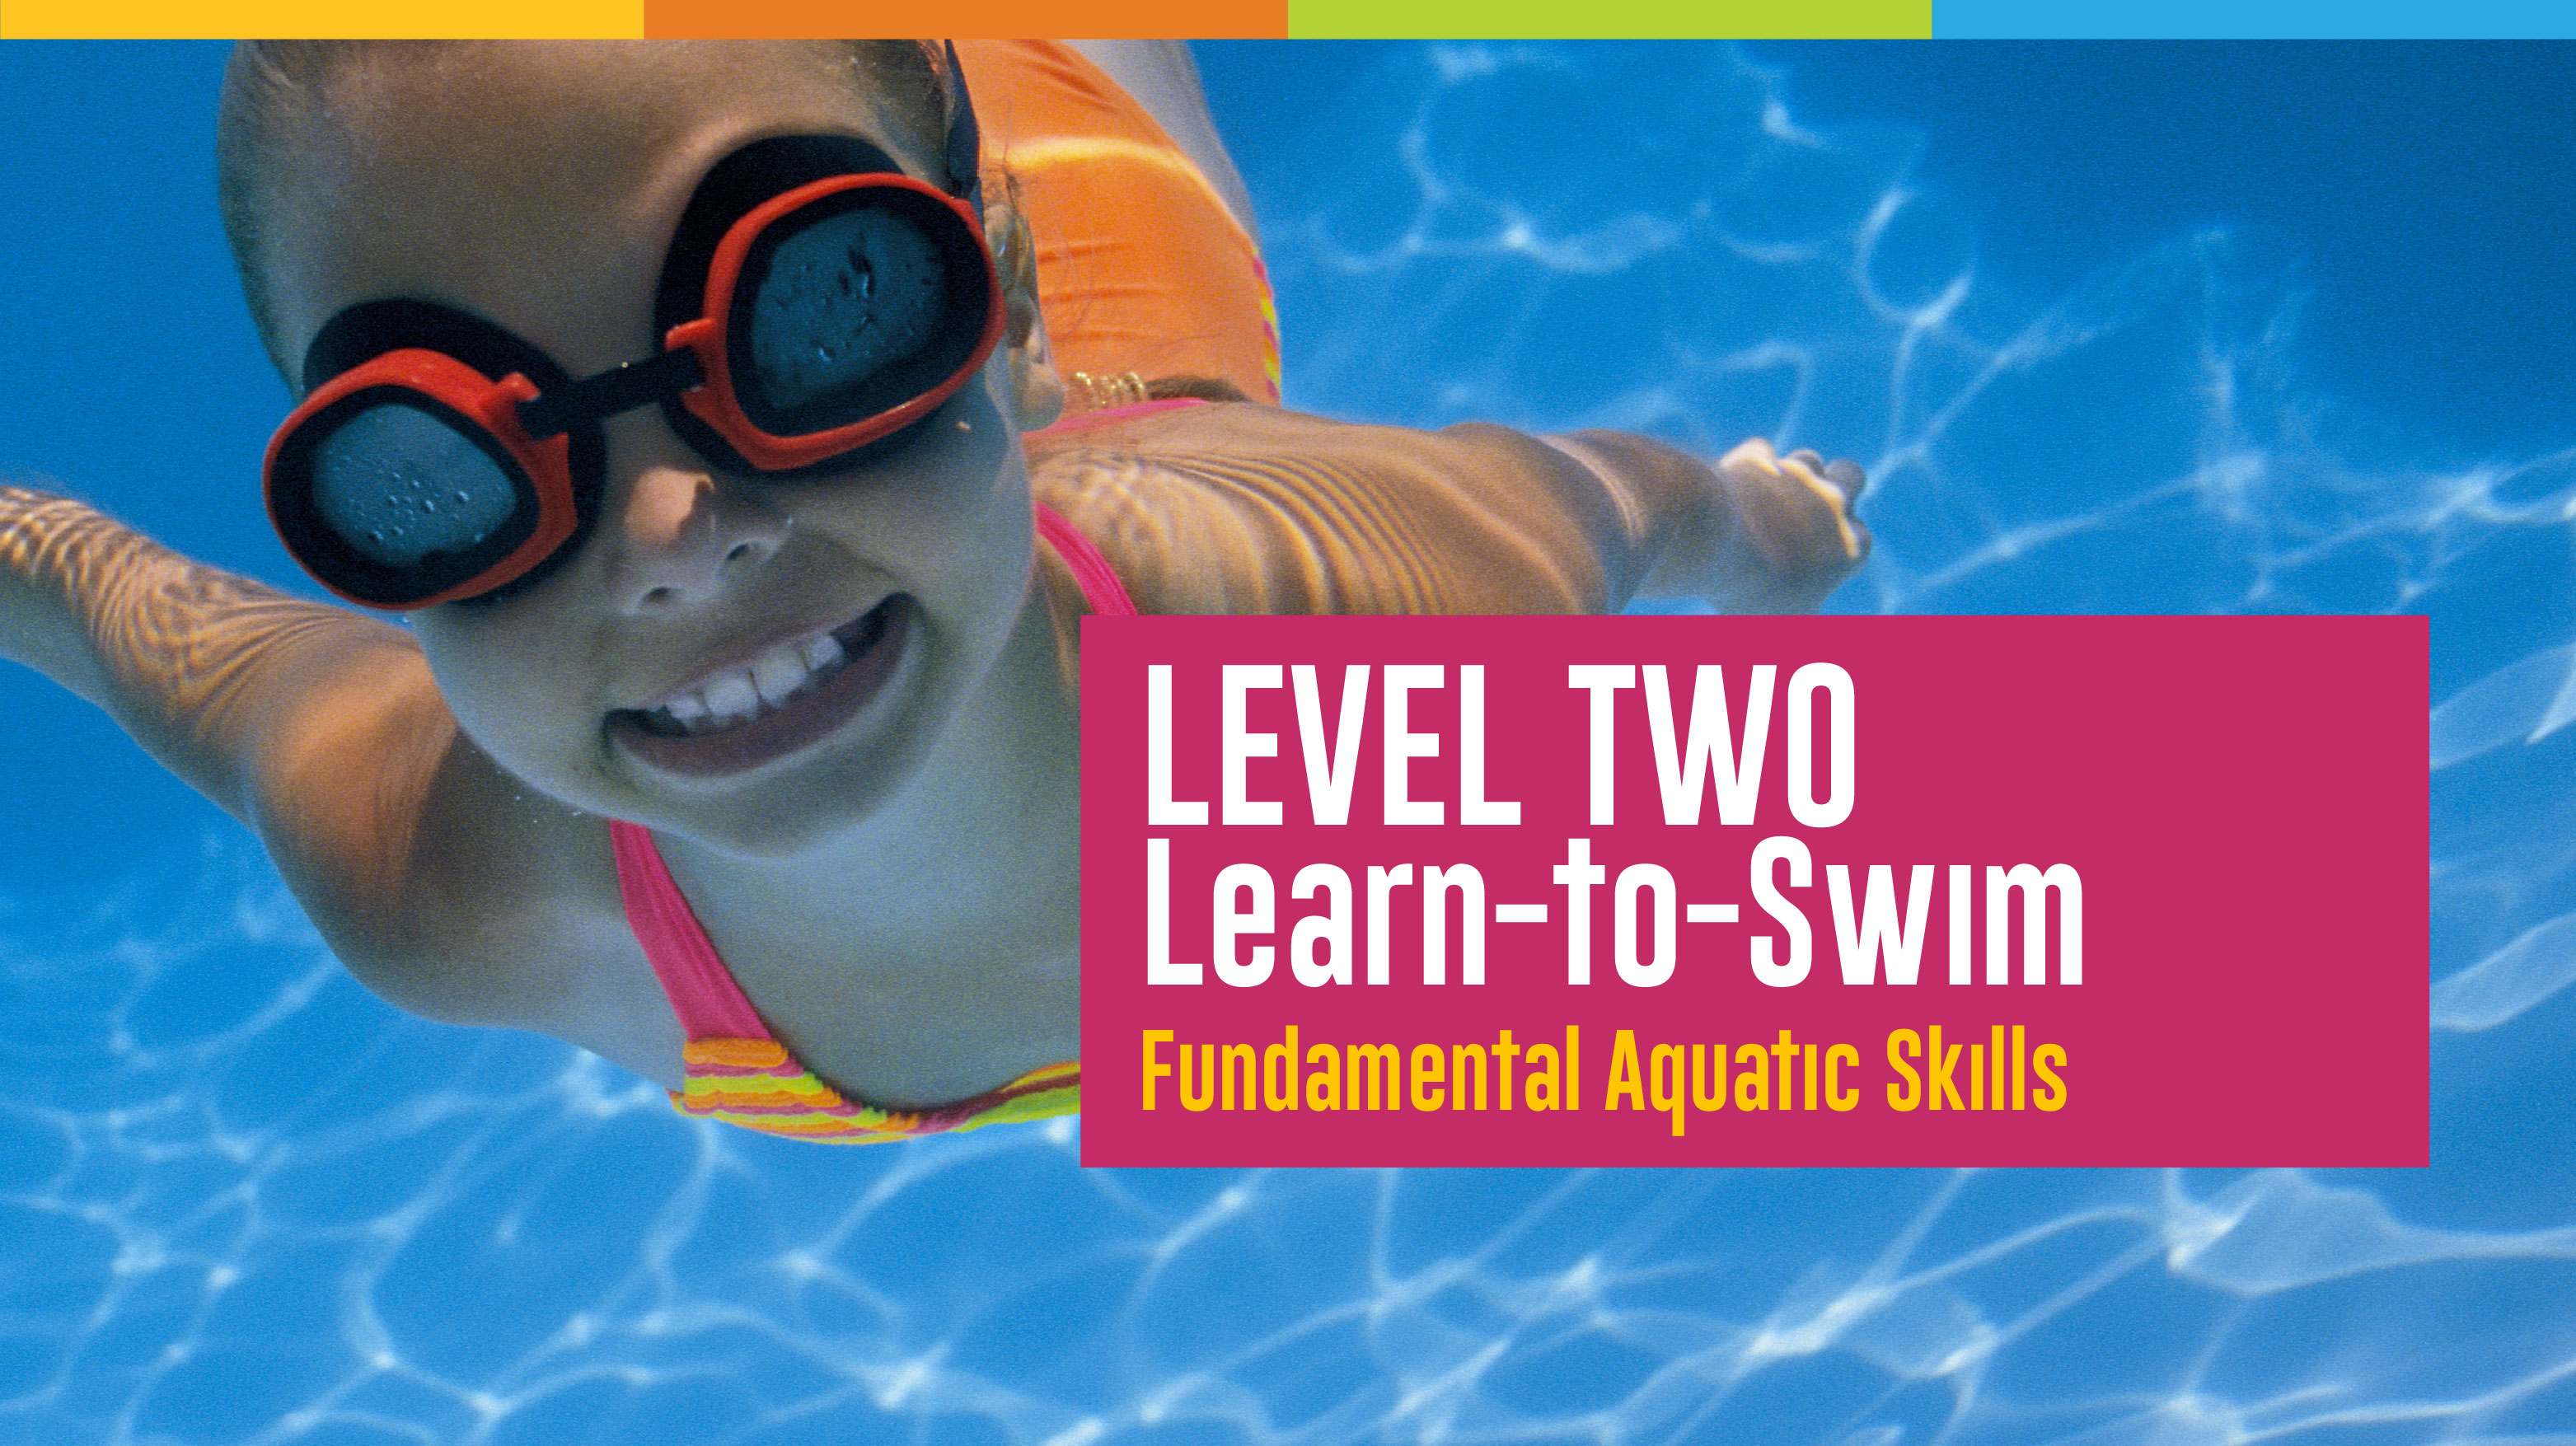 Learn to Swim - Level 2